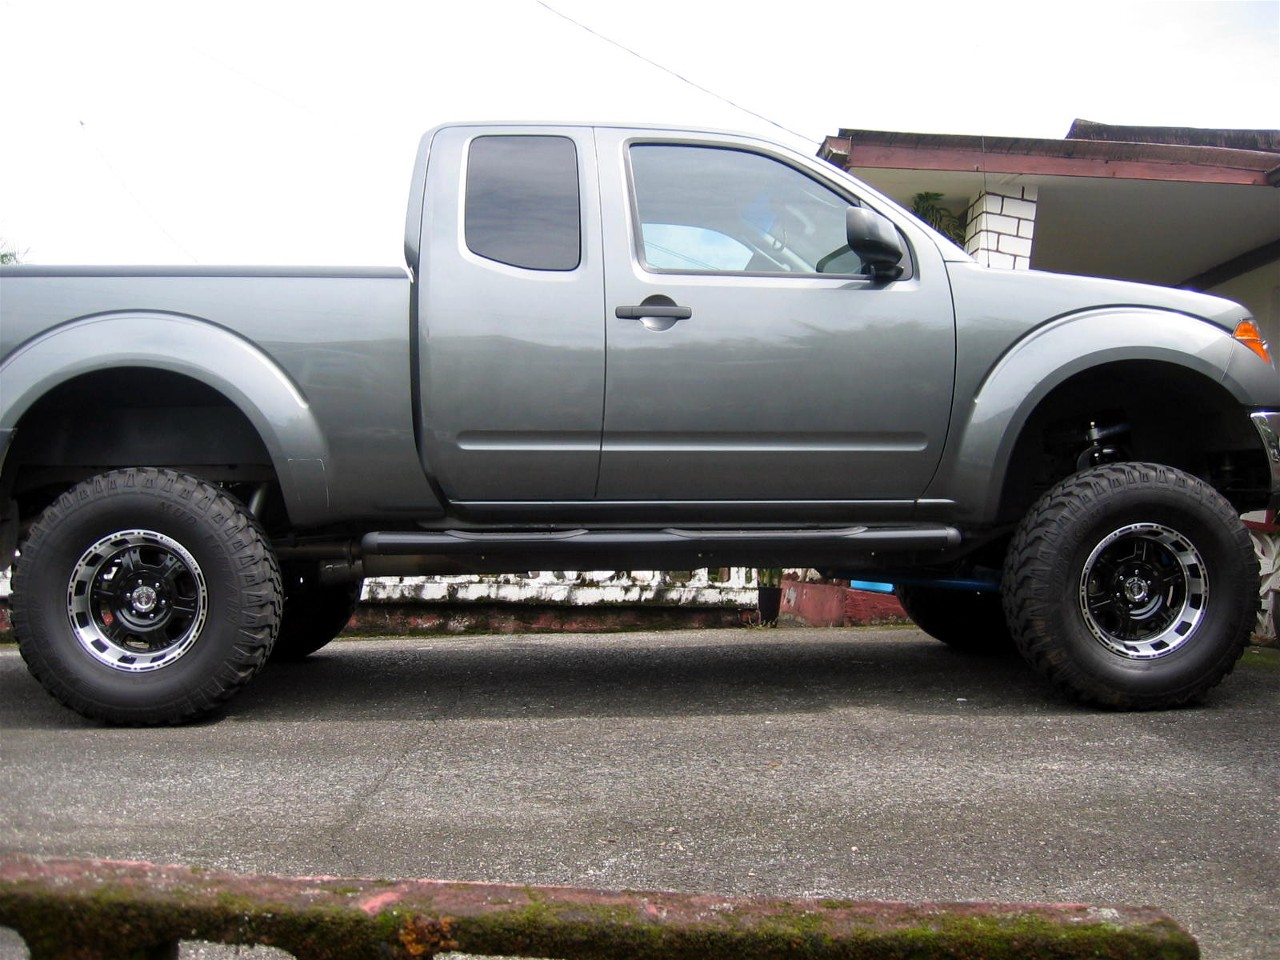 Nissan Frontier Leveling Kit Before And After >> Let's see your before and after - Page 4 - Nissan Frontier Forum